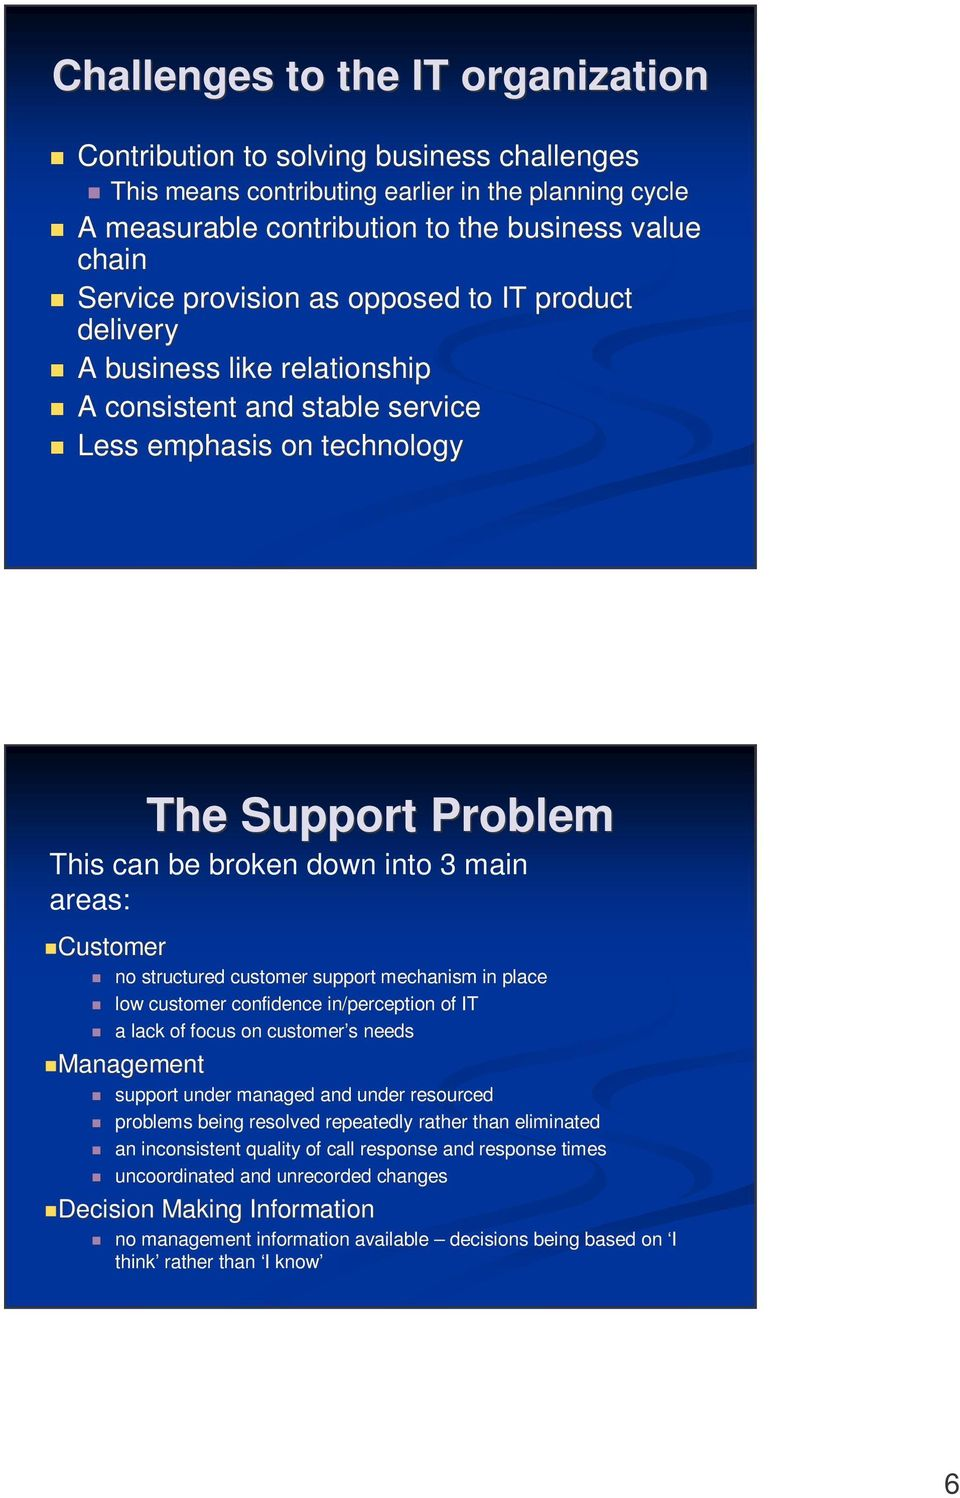 structured customer support mechanism in place low customer confidence in/perception of IT a lack of focus on customer s needs support under managed and under resourced problems being resolved